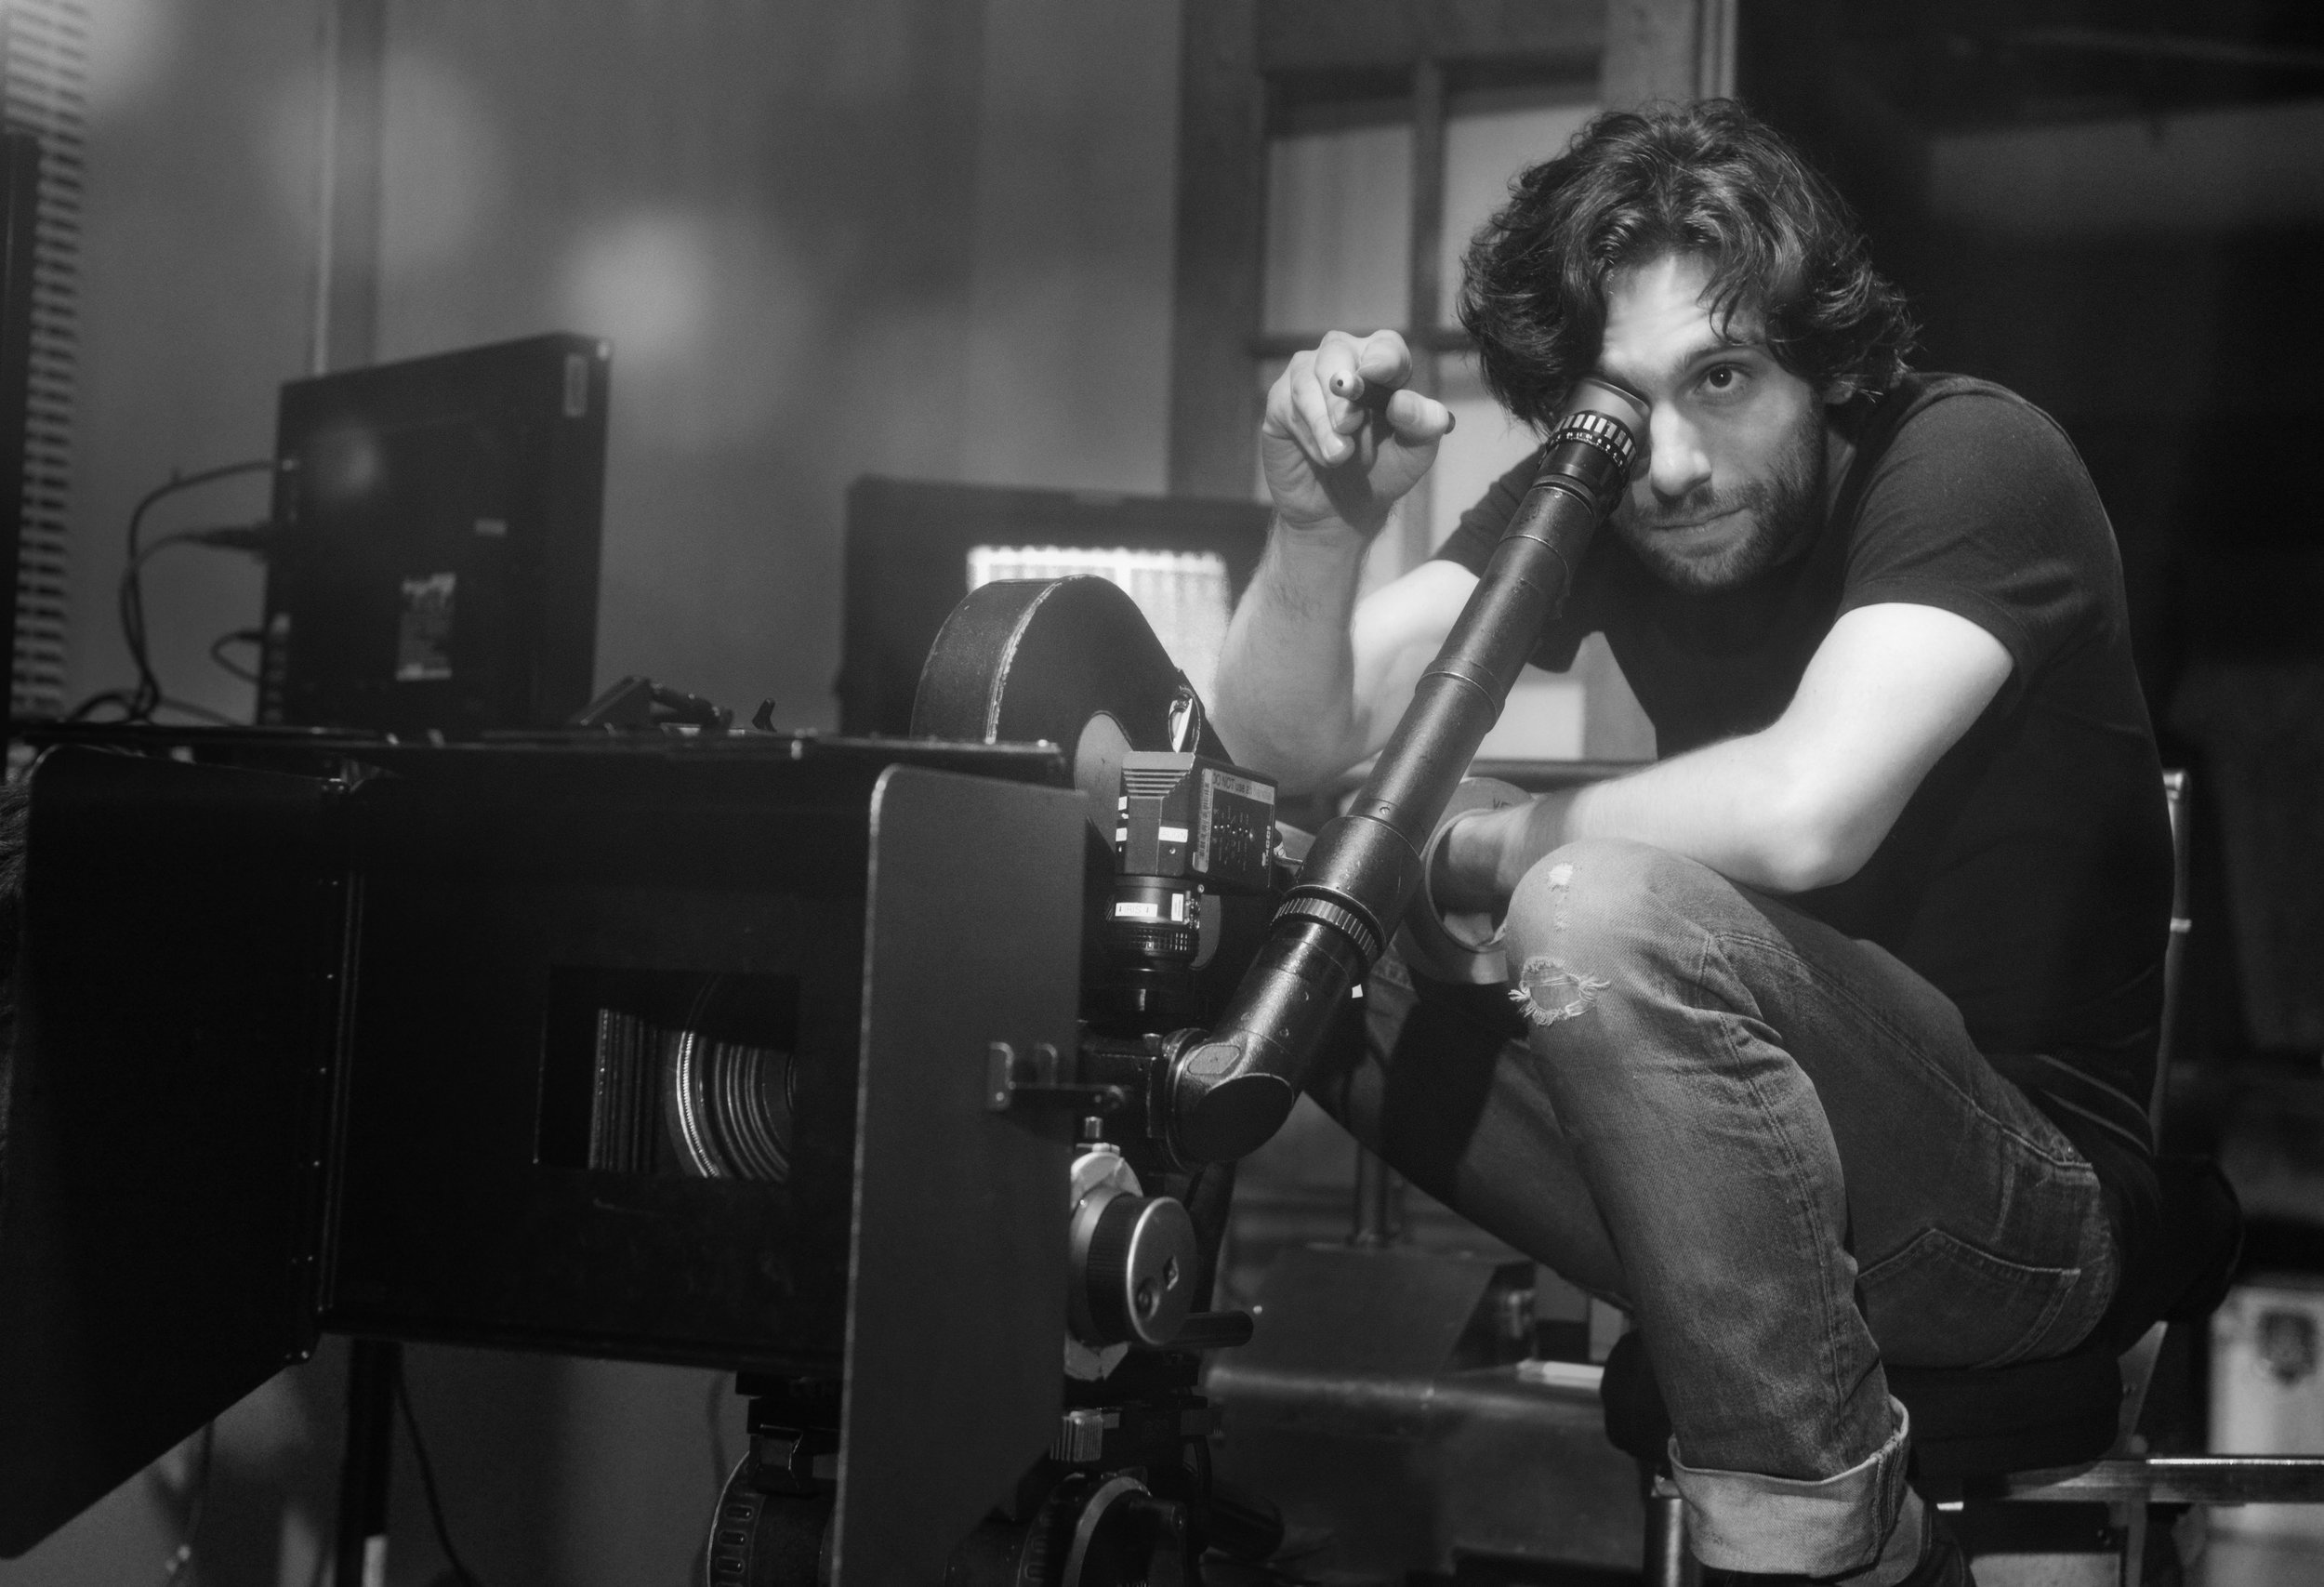 Brendan Bellomo - Director, producer, cinematographer and editor Brendan Bellomo is a multi award winning Director and VFX Supervisor for film, television and commercials.He currently resides in Los Angeles and works internationally.